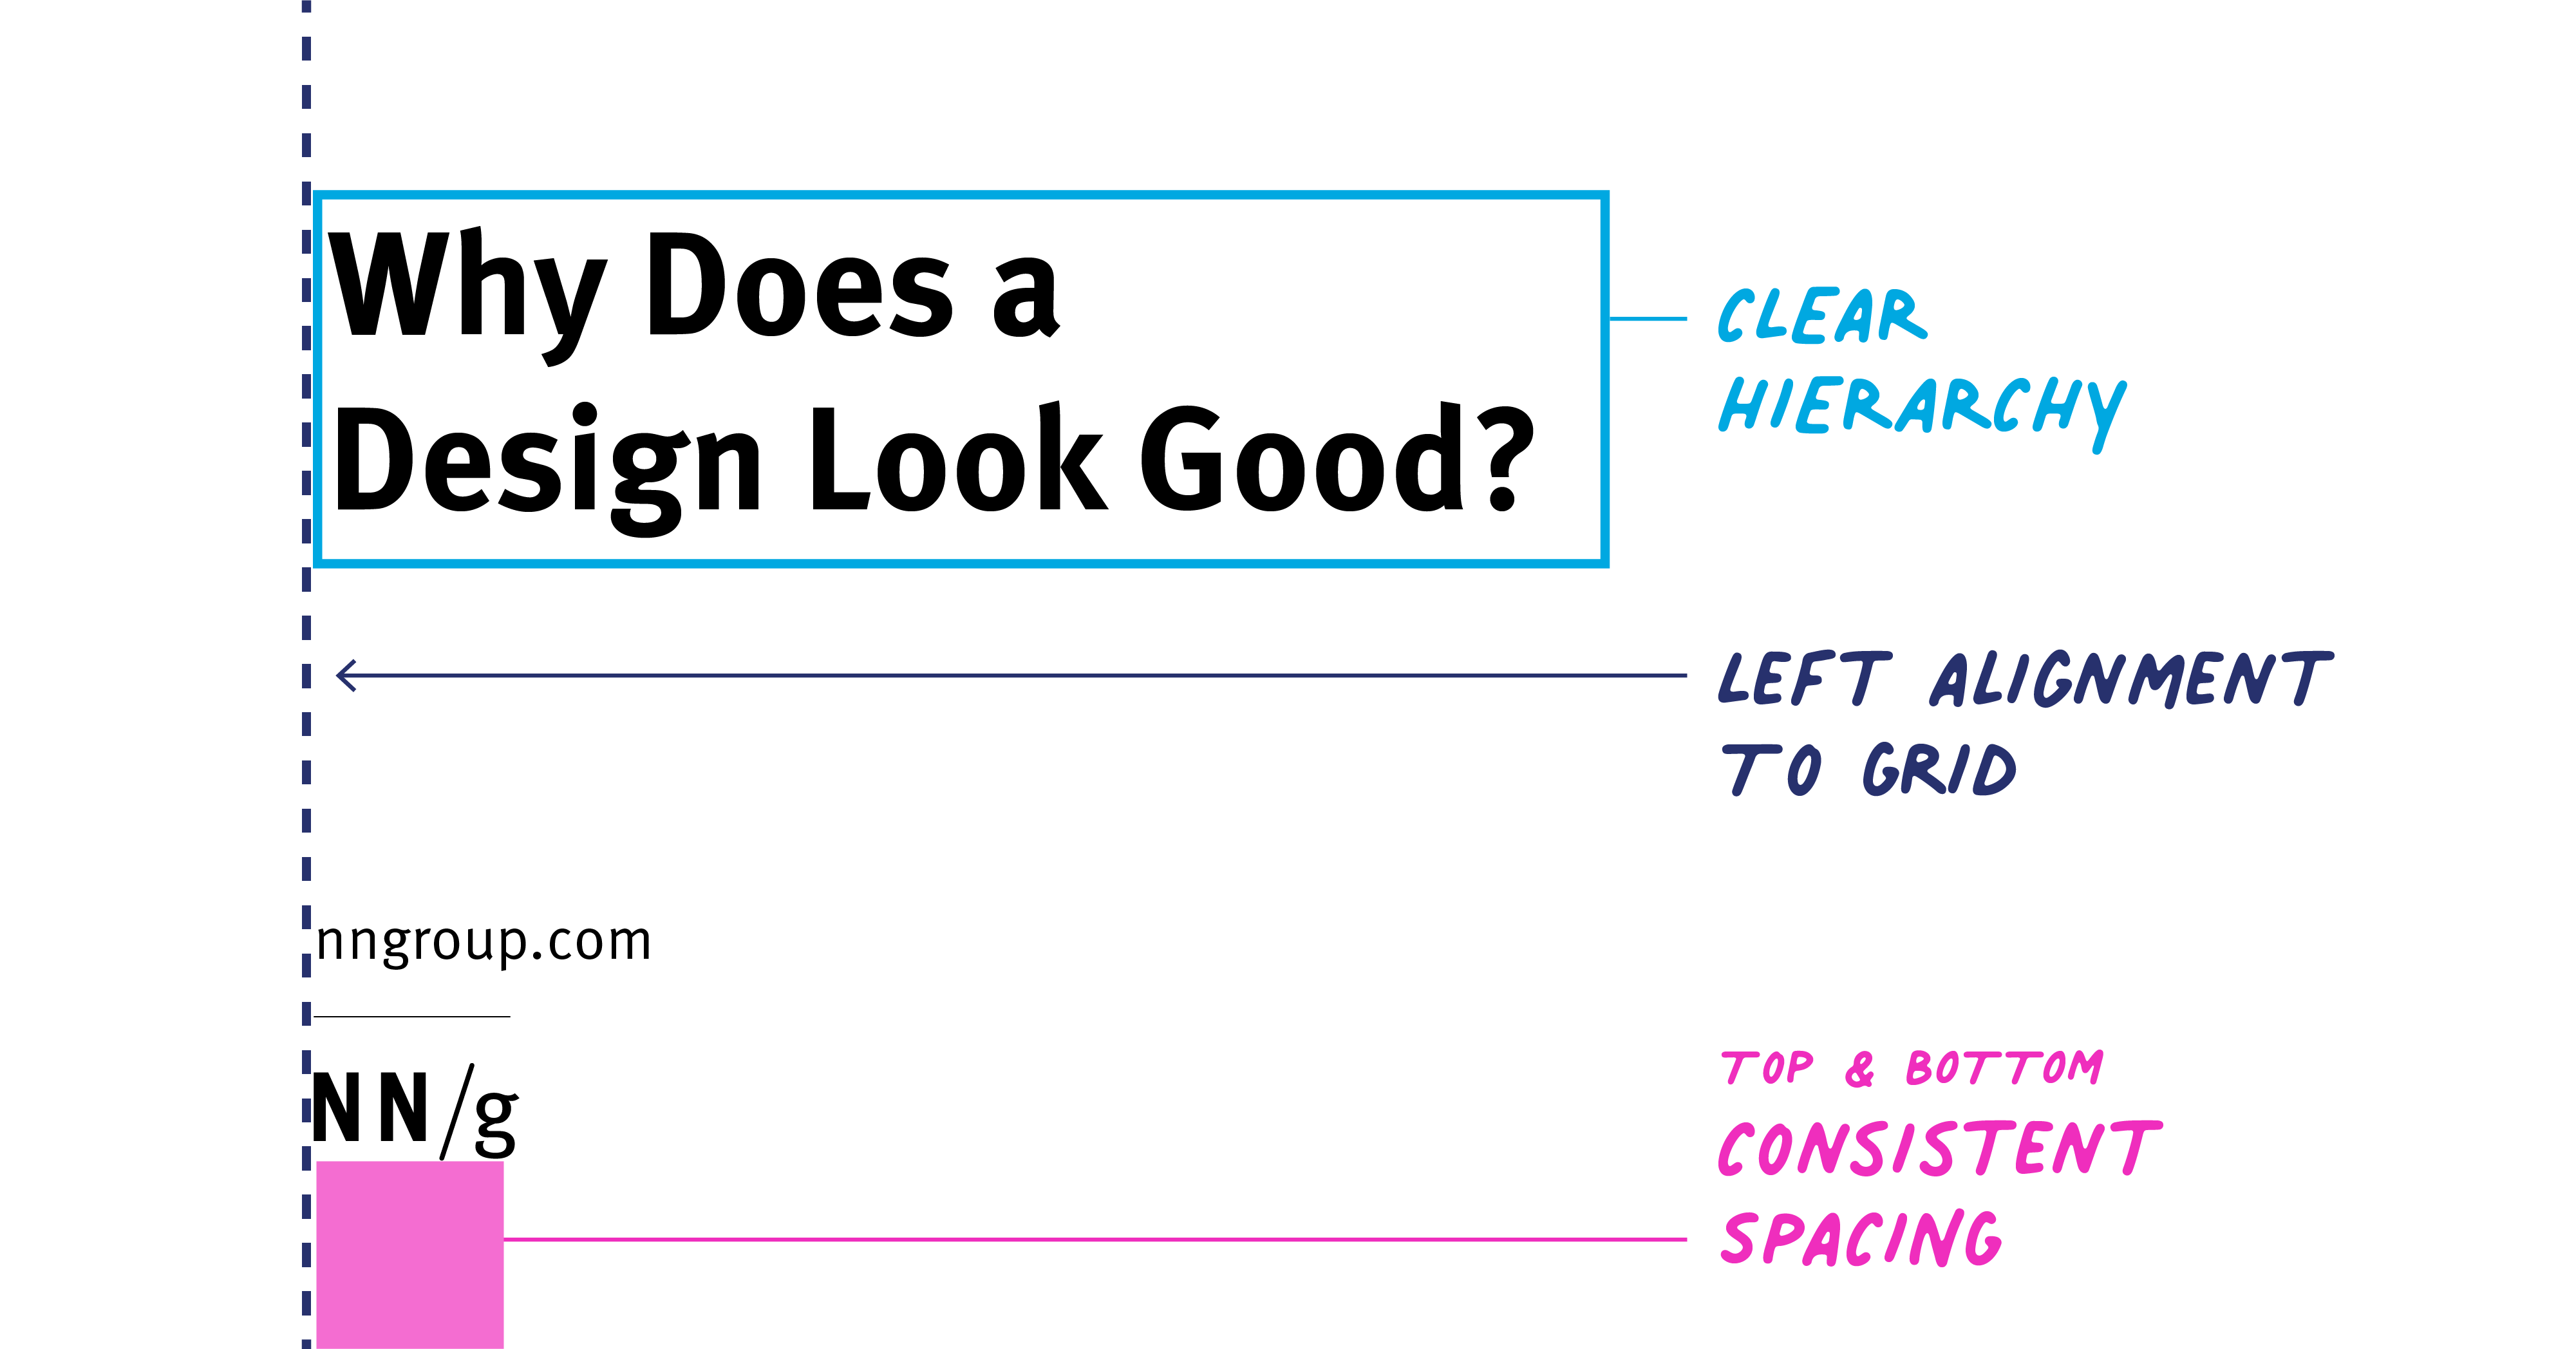 Why Does a Design Look Good?